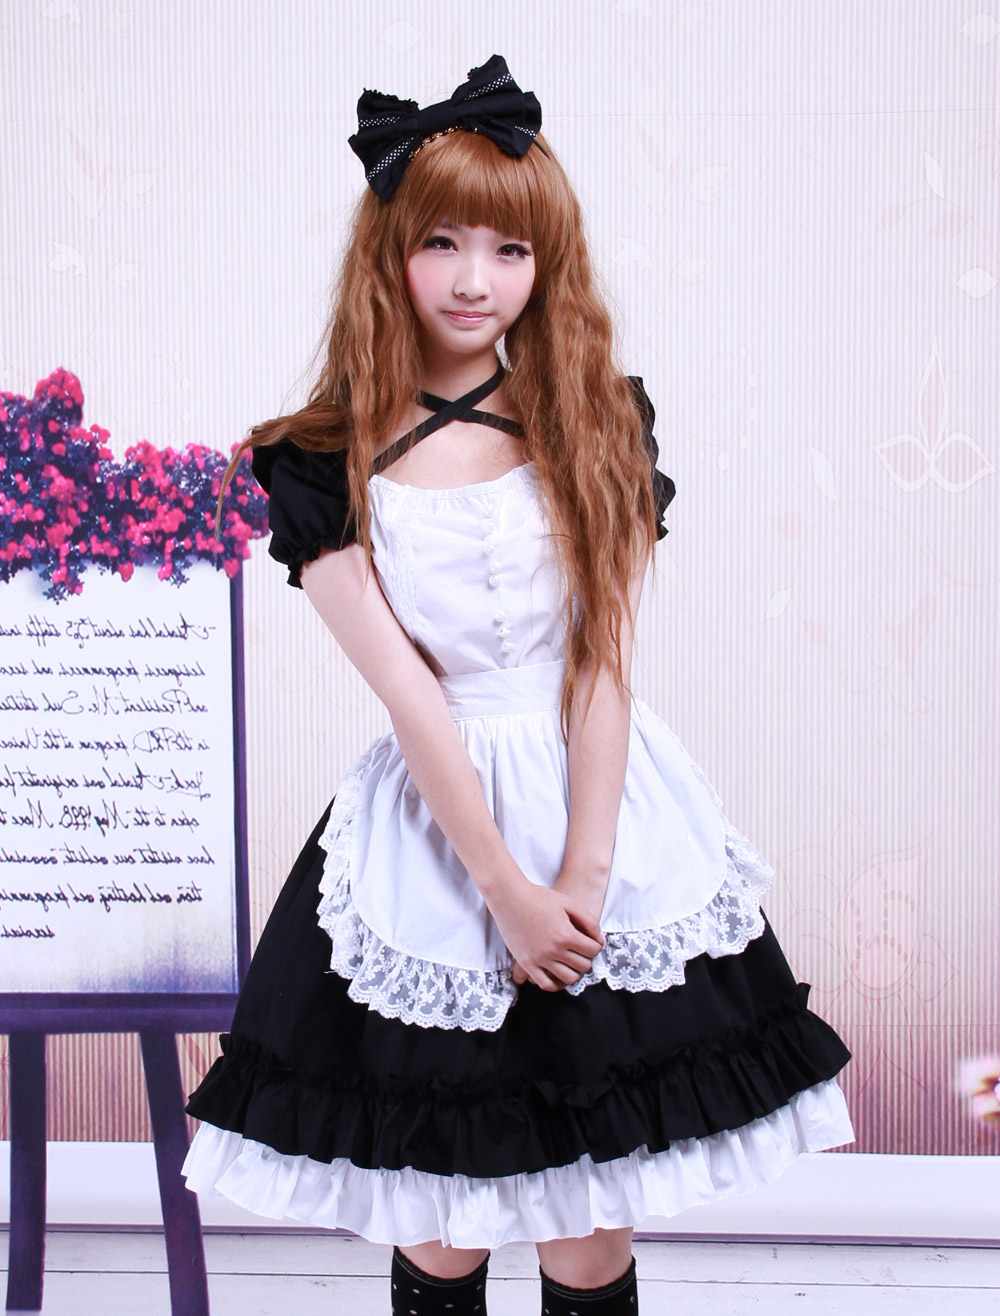 Sweet Black Cotton Maid Lolita One-piece White Apron Short Sleeves Lace Trim